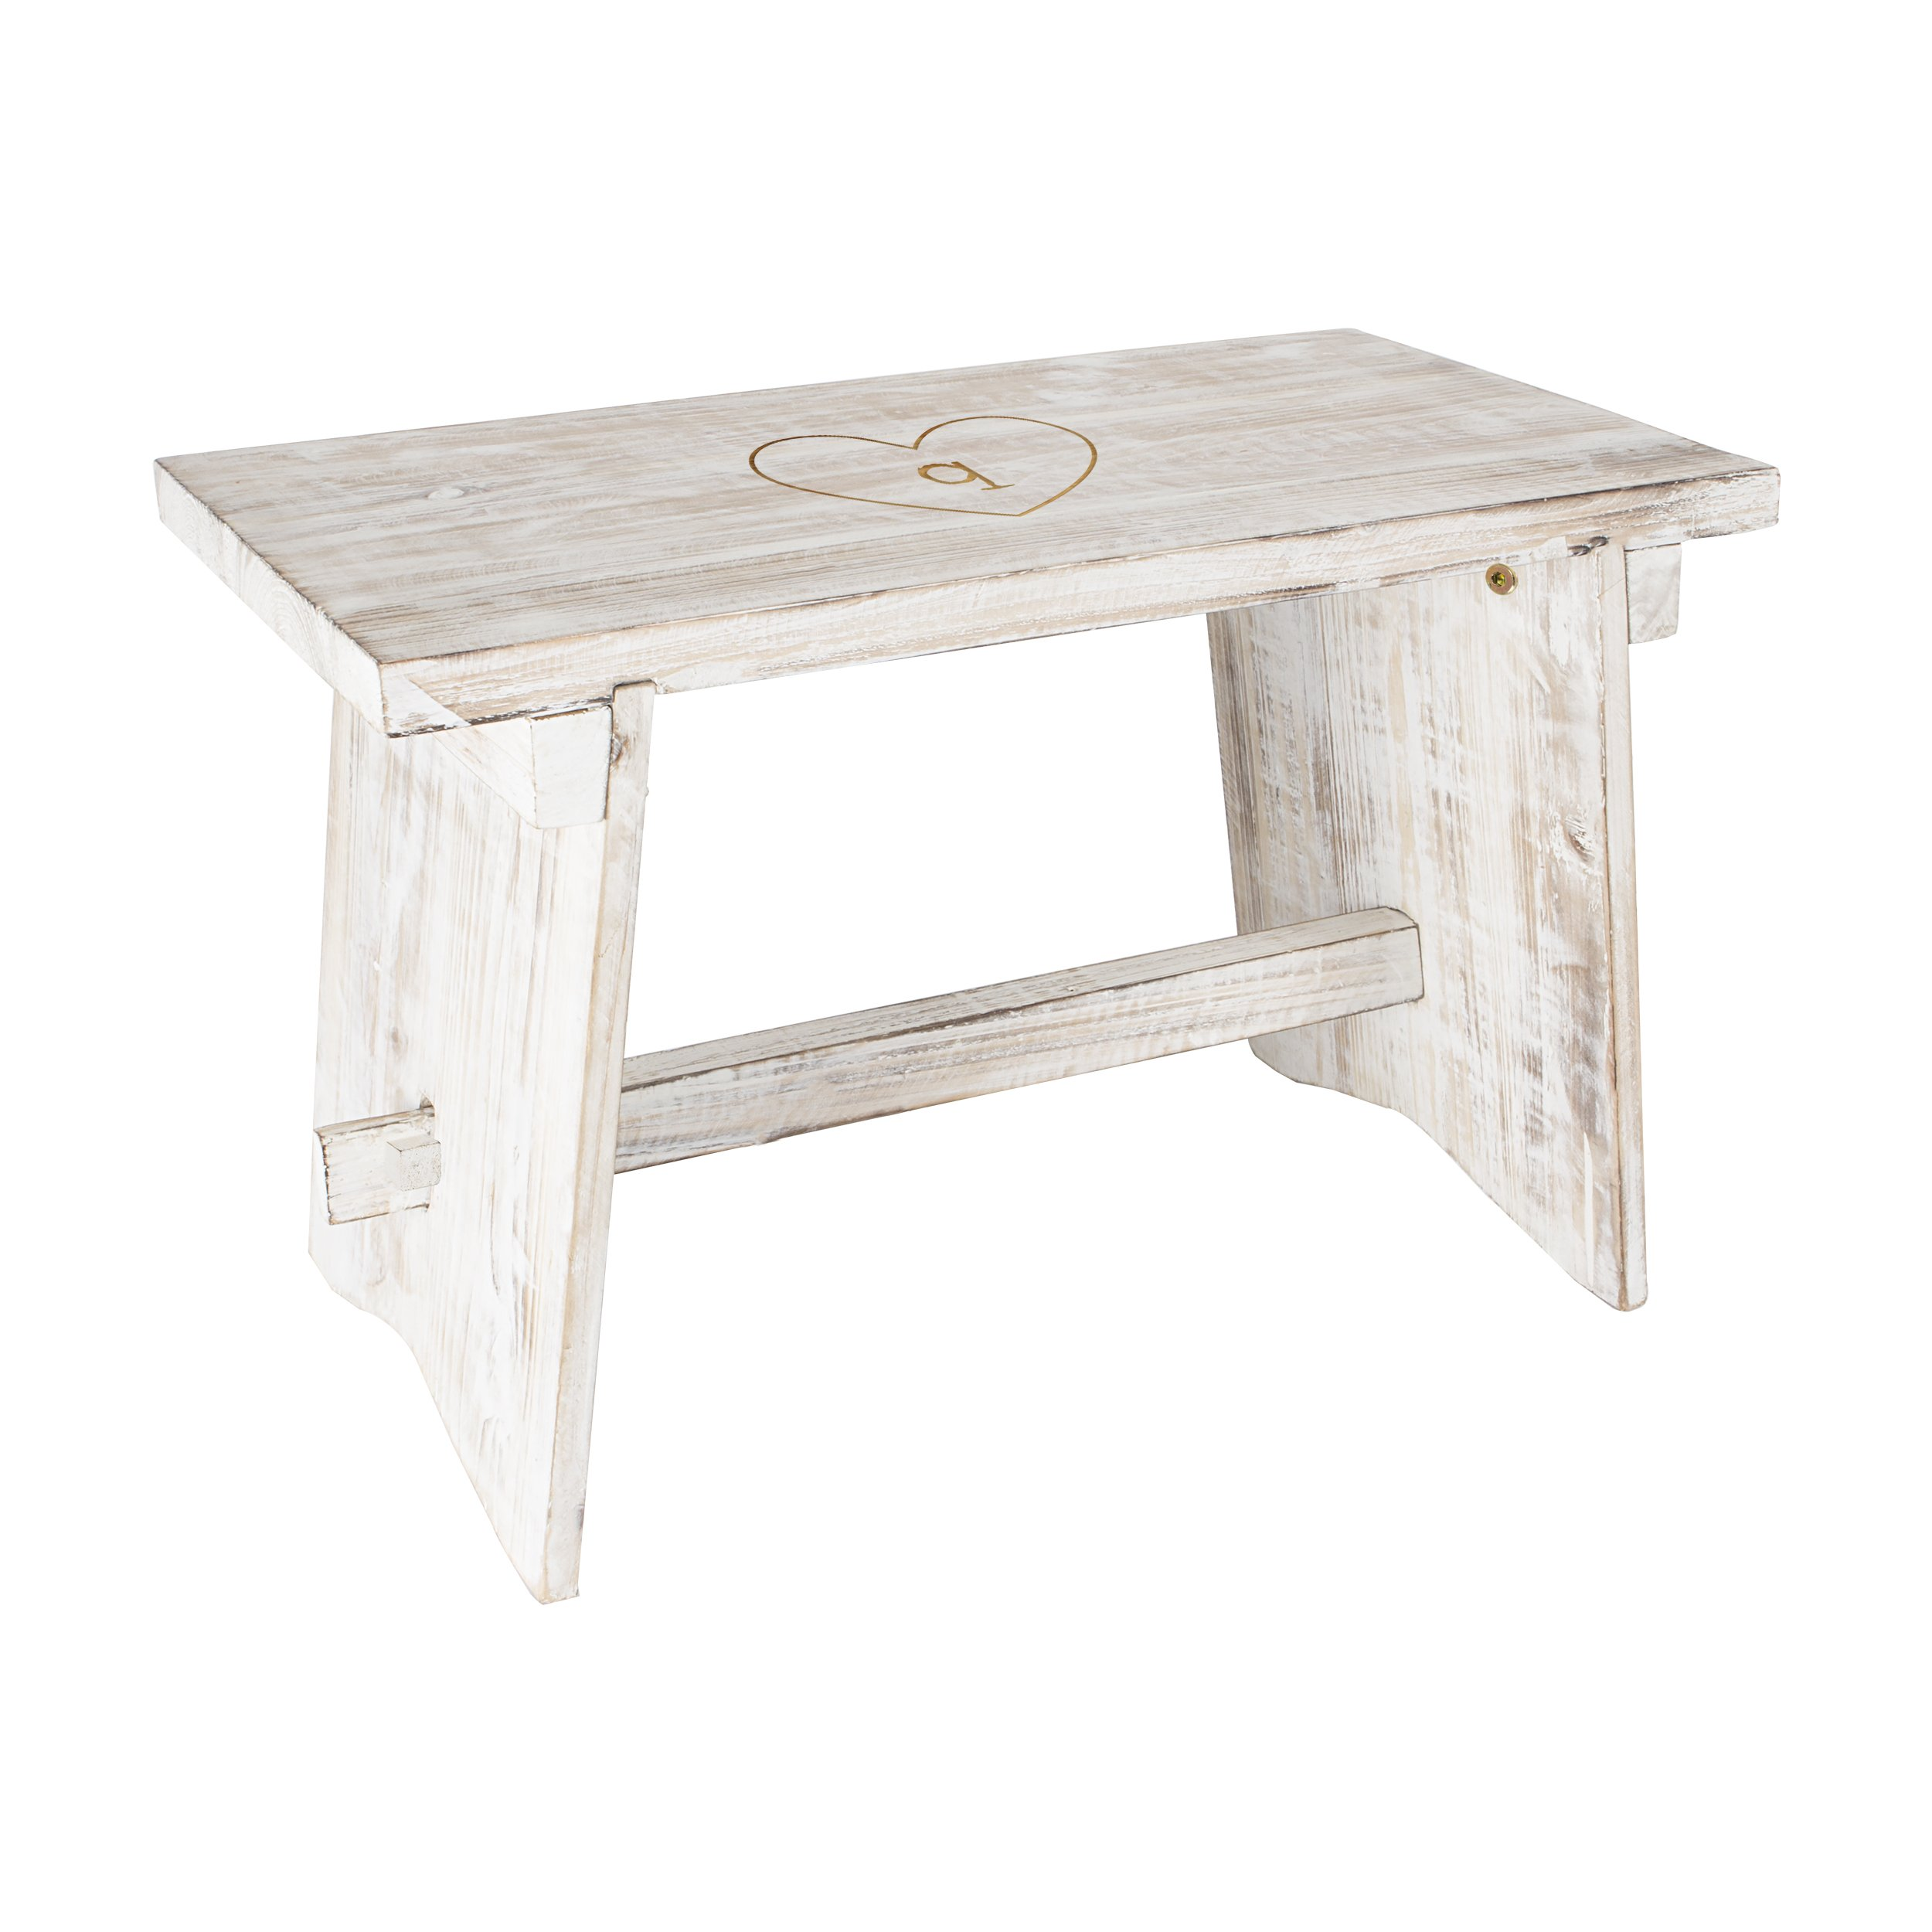 Cathy's Concepts HRT-3950-Q Personalized Heart Rustic Wooden Guestbook Bench